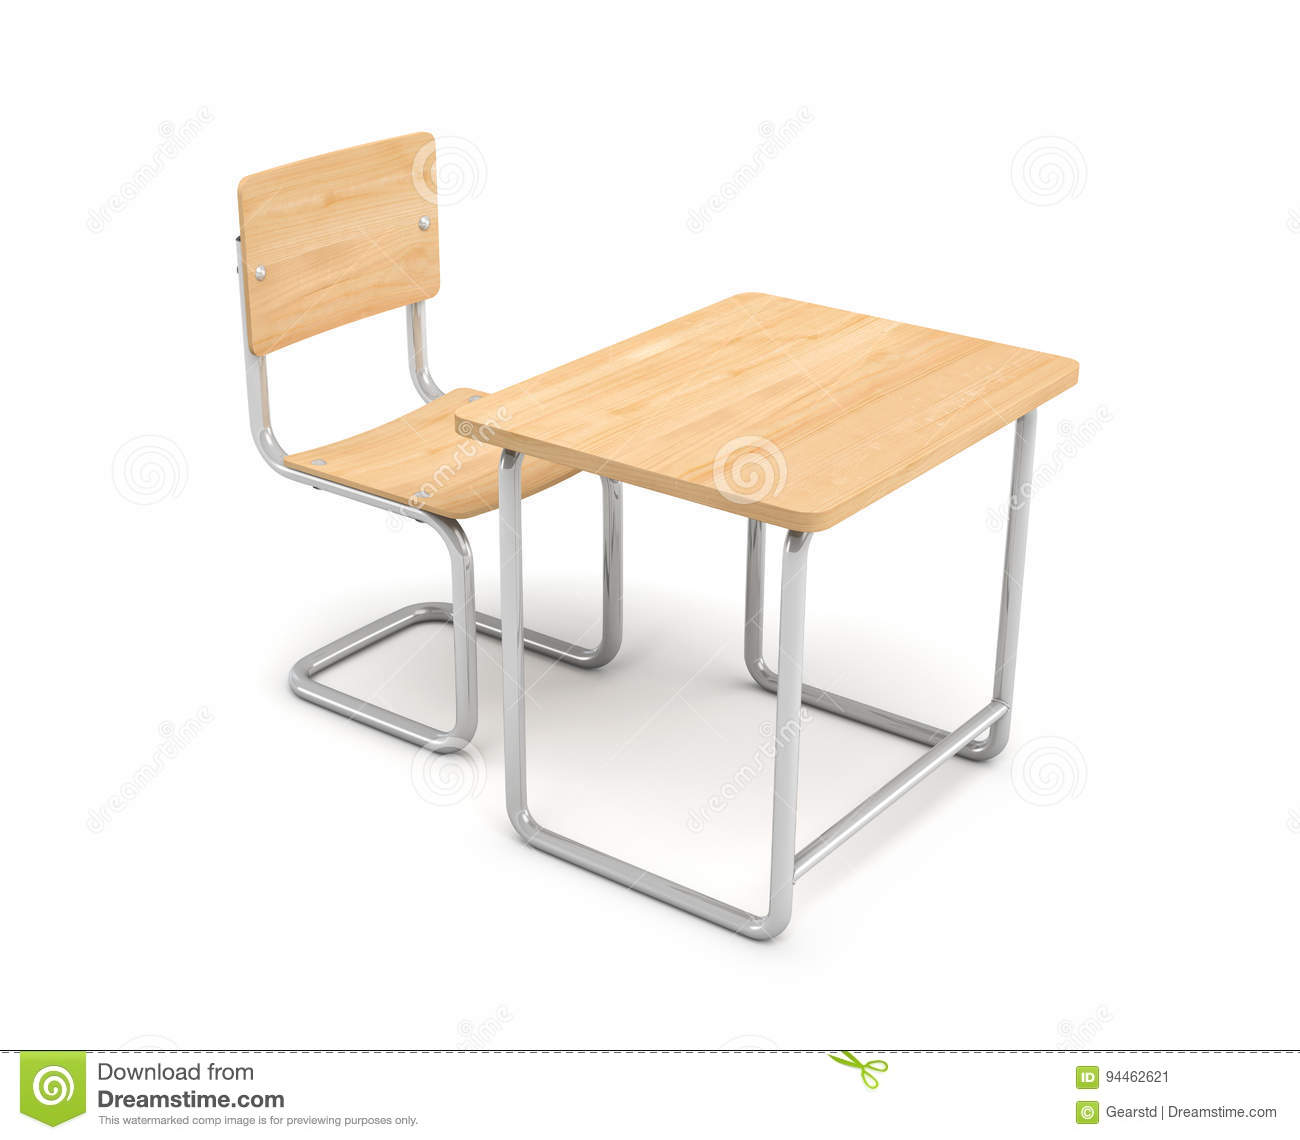 desk chair made rental orlando 3d rendering of a school and both are iron light wood